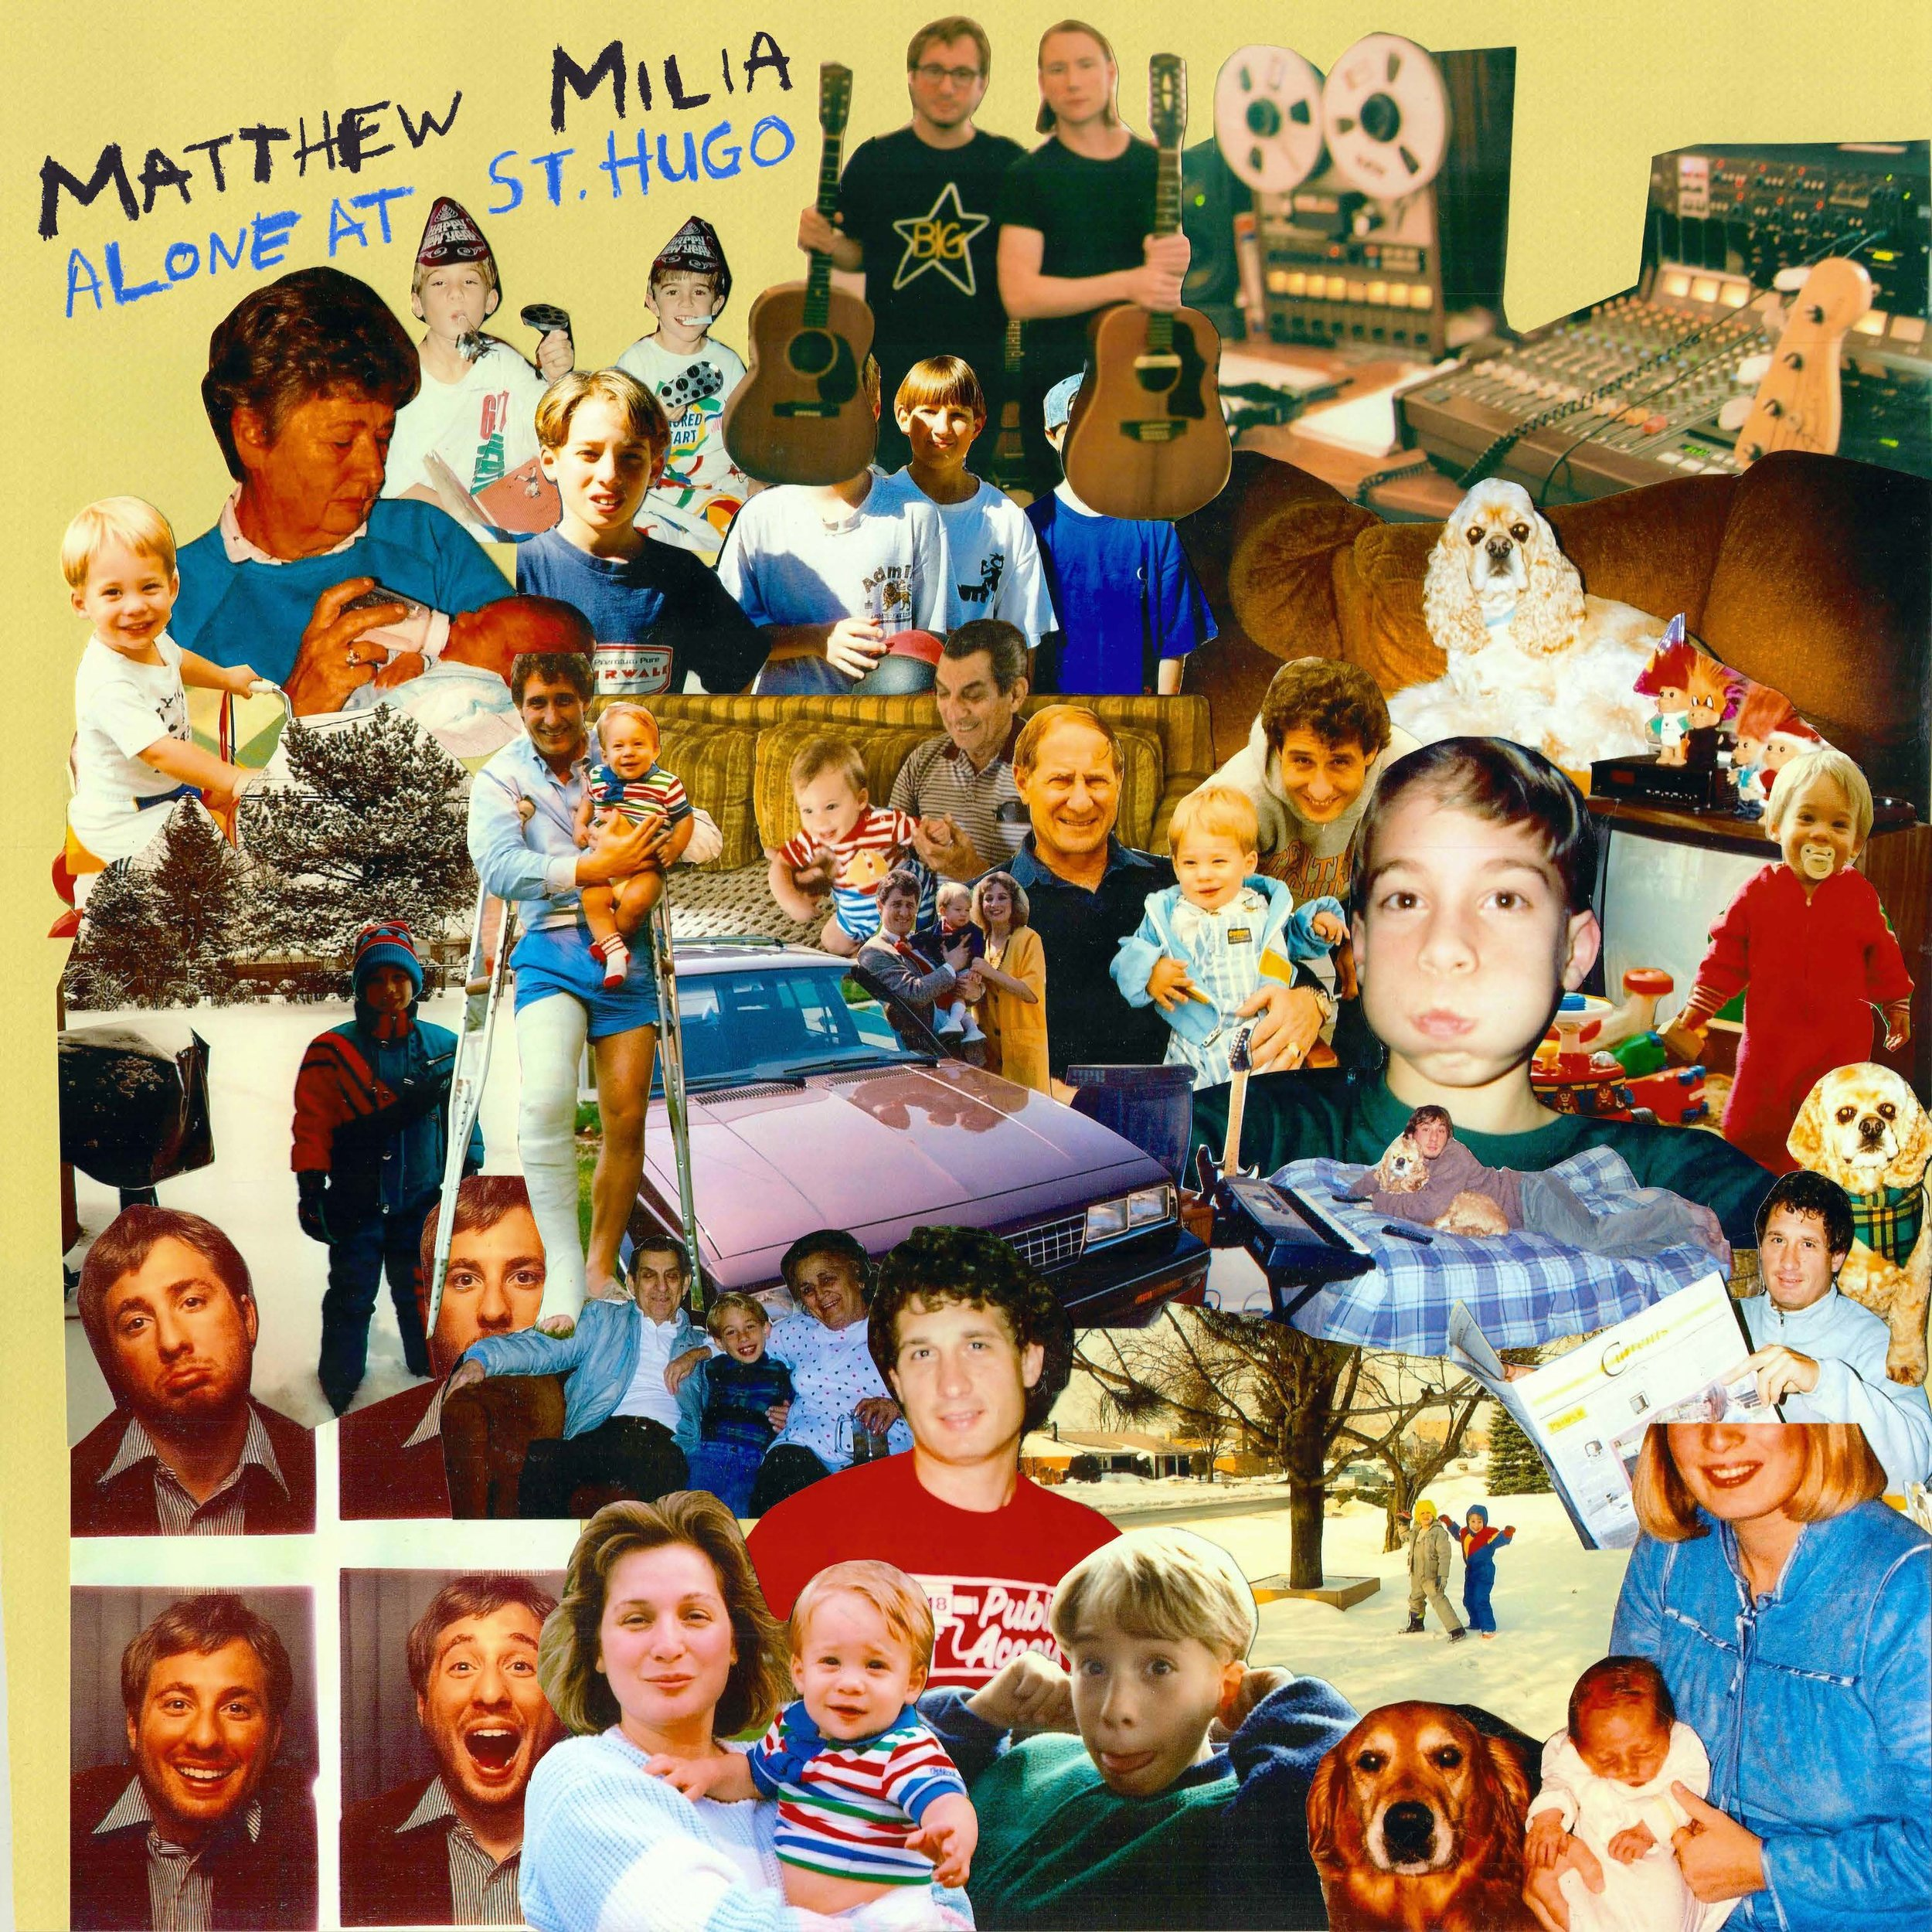 Matthew Milia - Alone at St. Hugo (cover).jpg